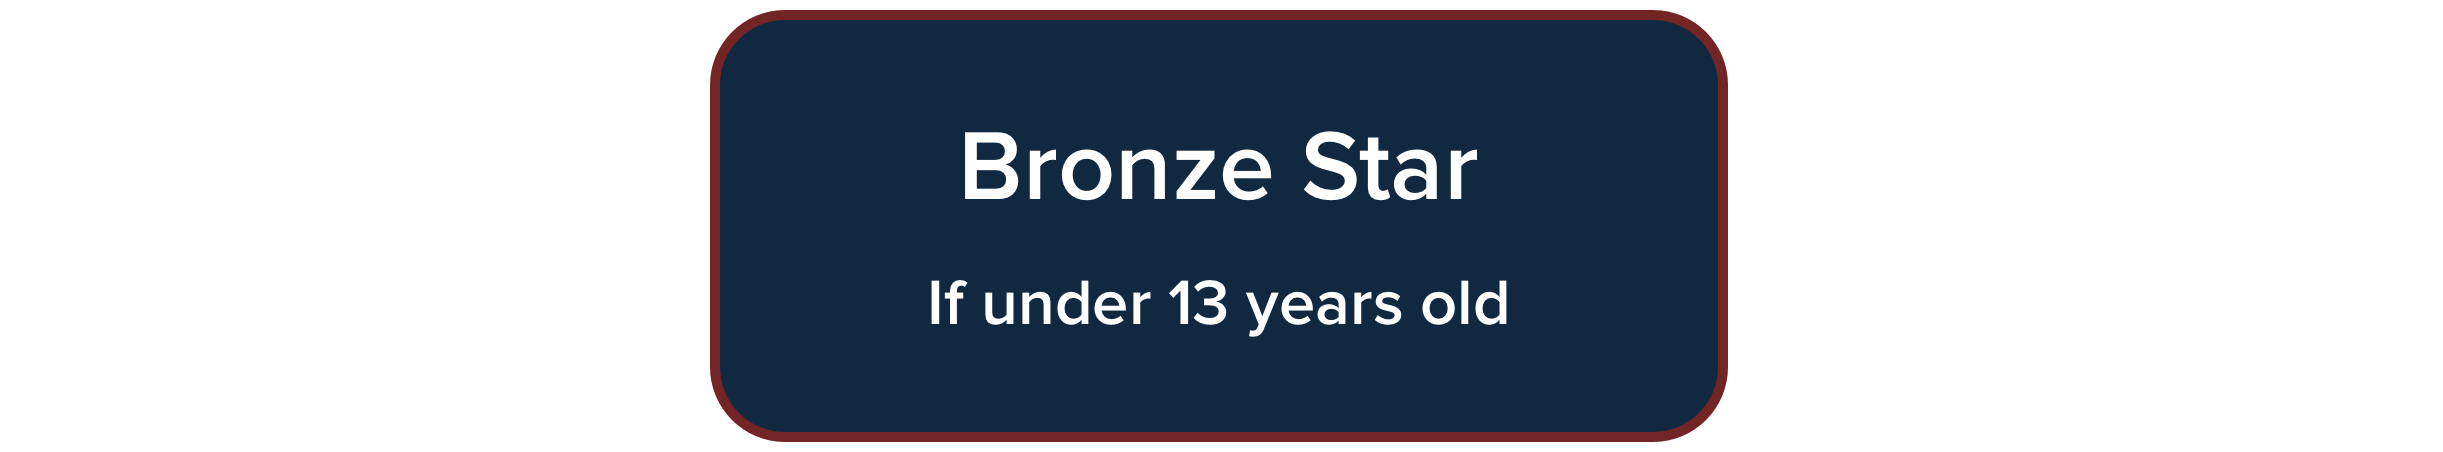 Bronze Star Course for under 13 years of age